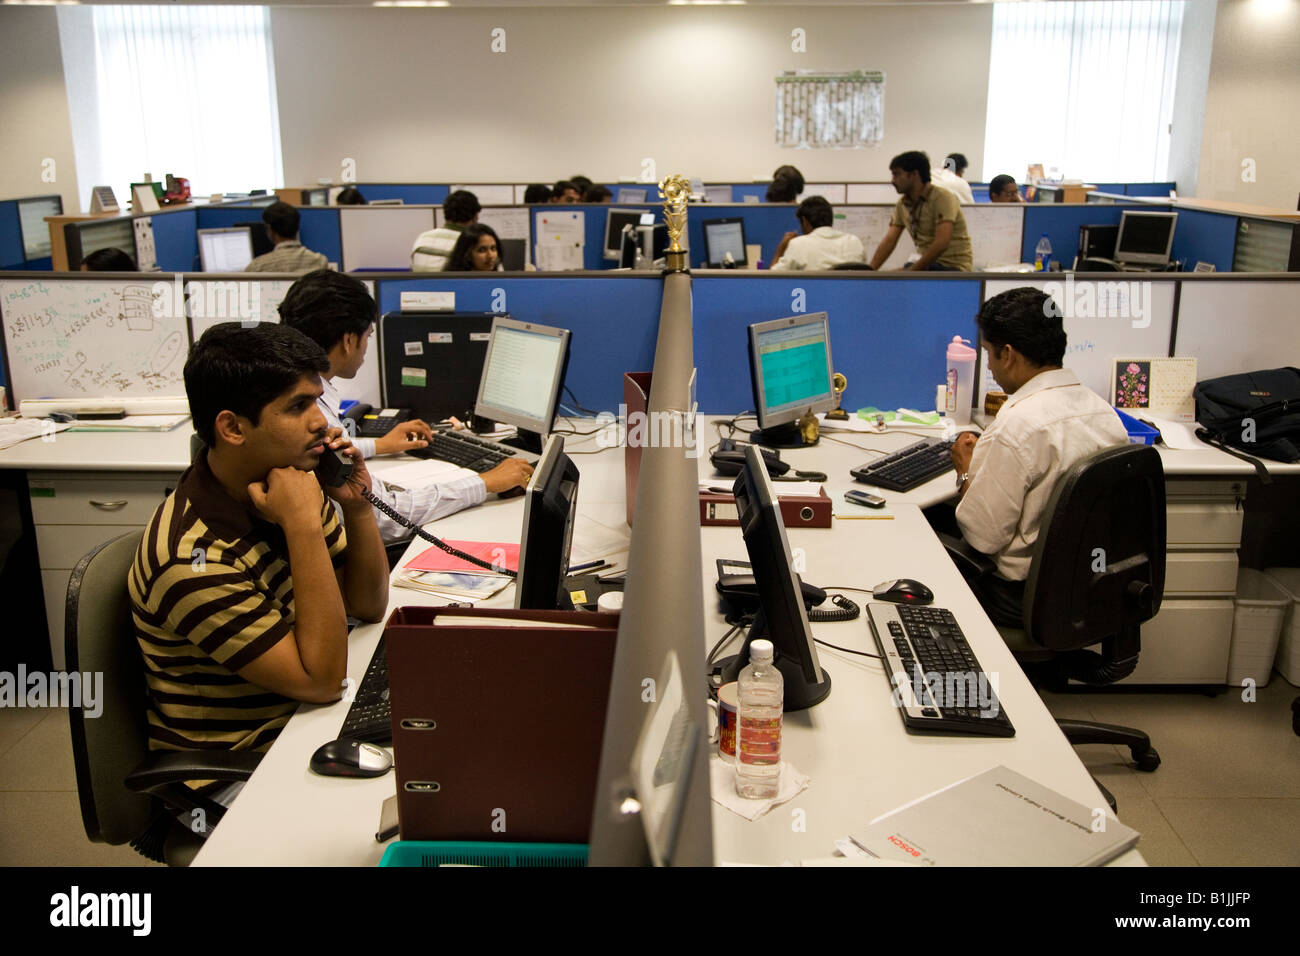 Office in india